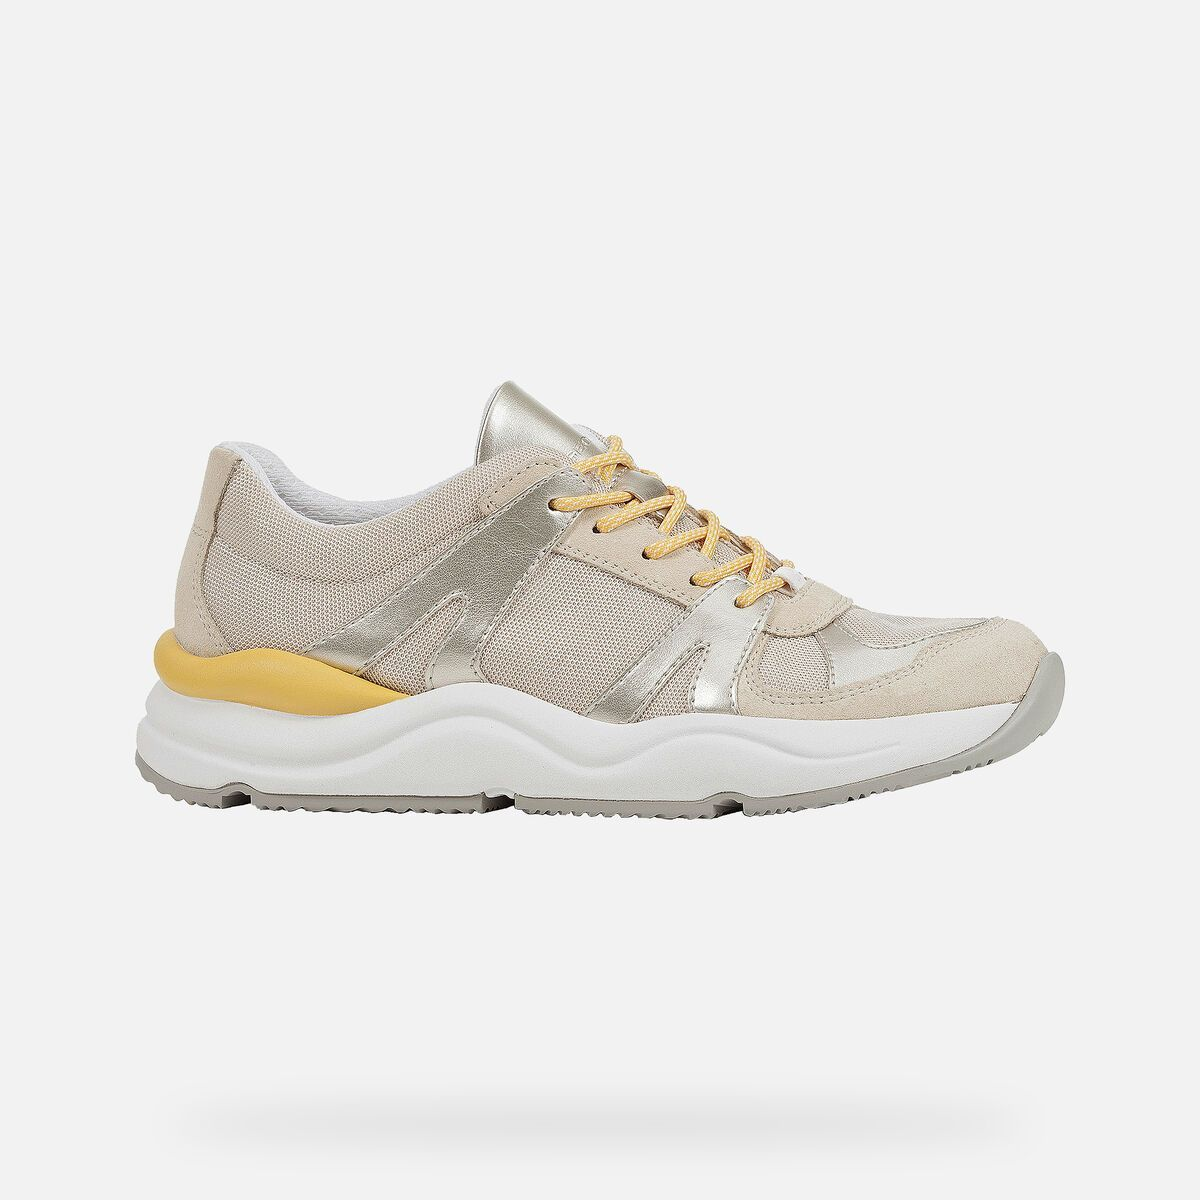 Best trainers: 25 best fashion trainers